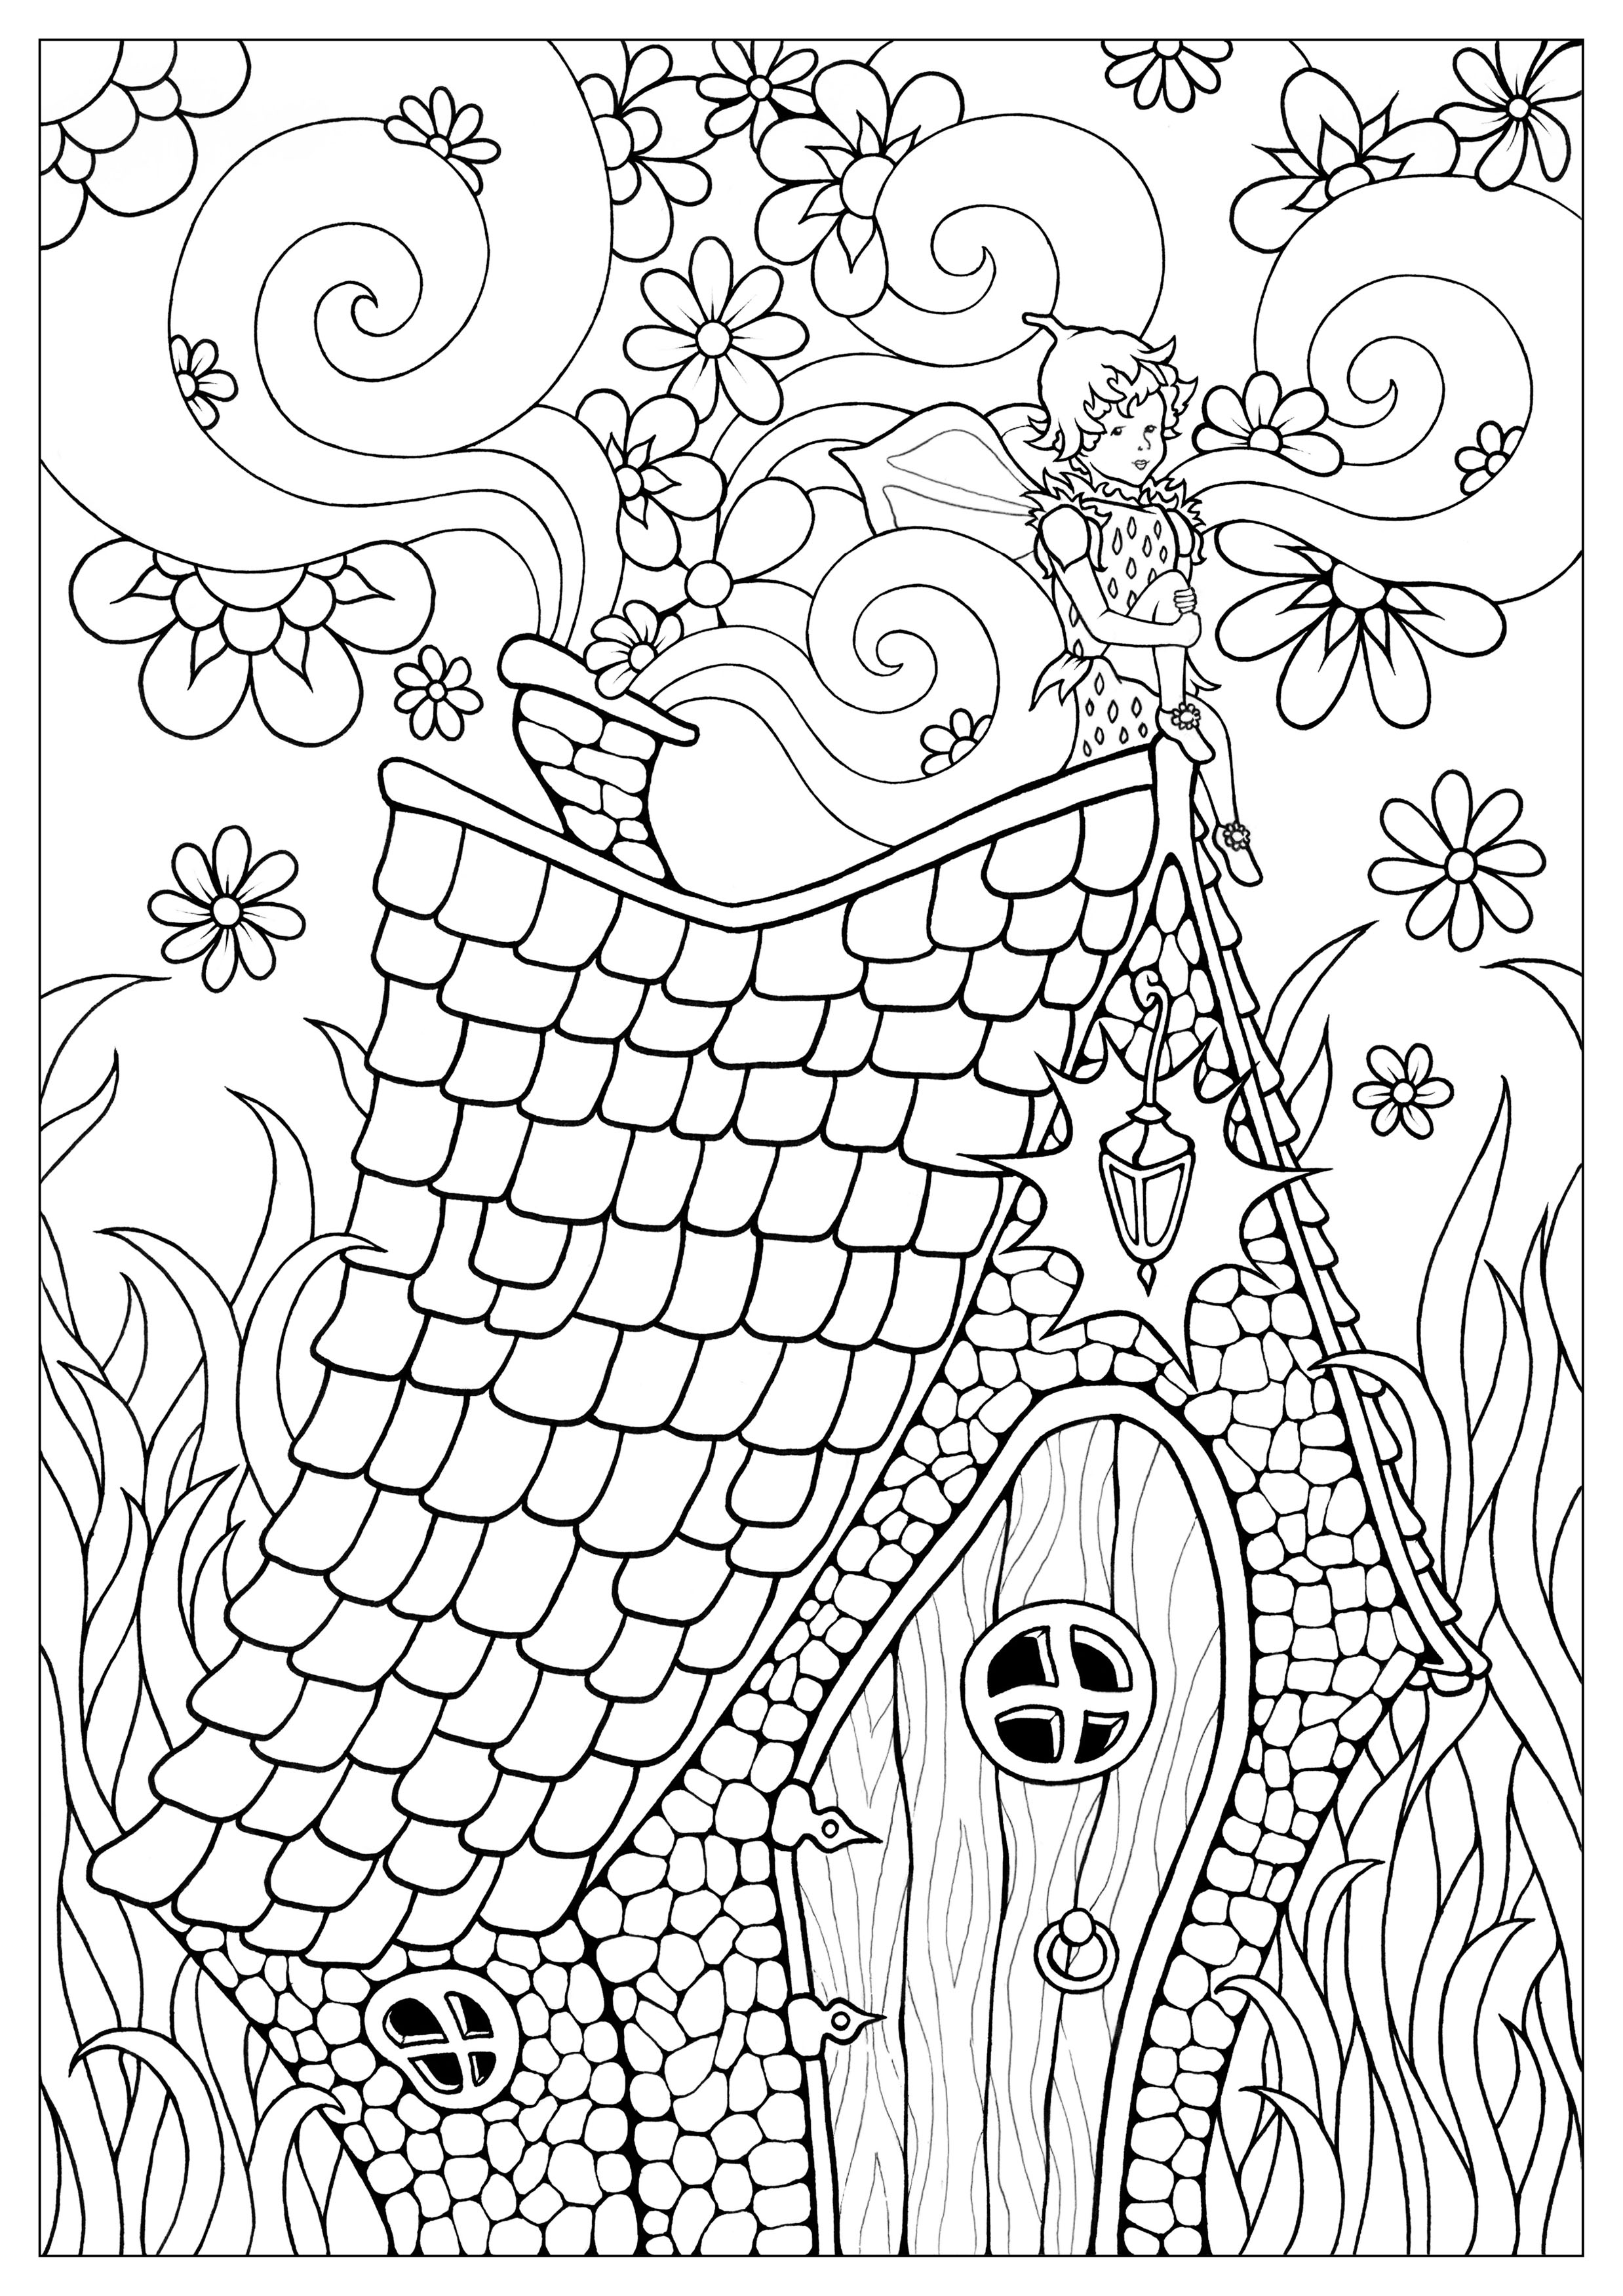 coloring fairies for kids fairy coloring pages getcoloringpagescom coloring for fairies kids